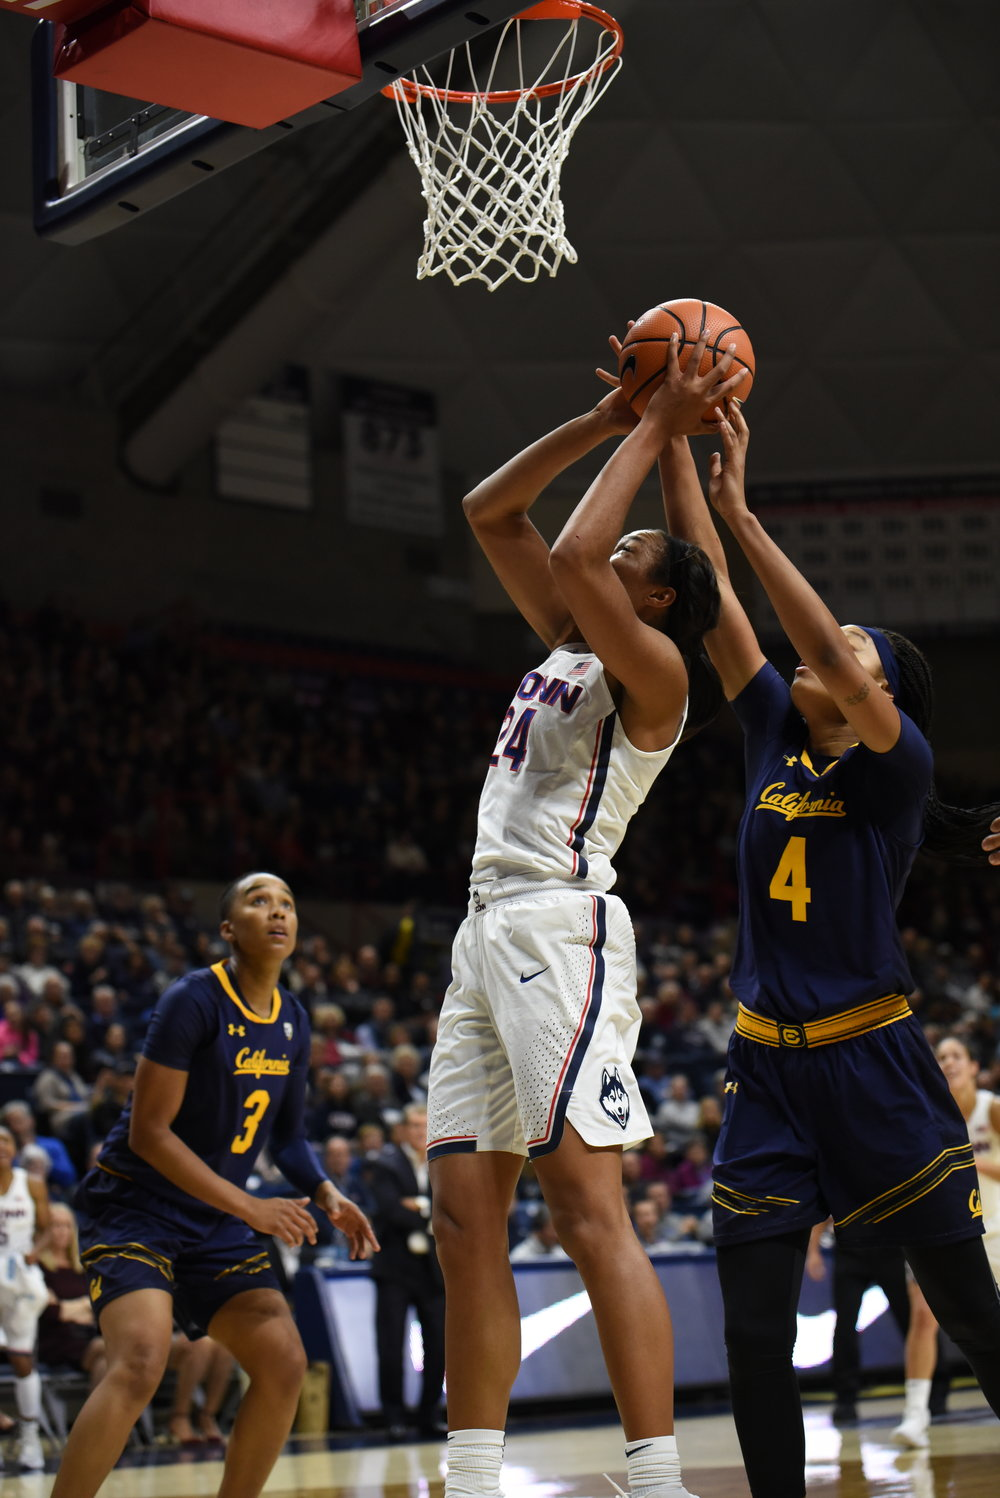 UConn junior forward Napheesa Collier goes up for a layup surrounded by two California defenders in the Huskies' 82-47 win on Friday, Nov. 17 at Gampel Pavilion in Storrs, Connecticut. (Photo by Charlotte Lao, Associate Photo Editor/The Daily Campus)